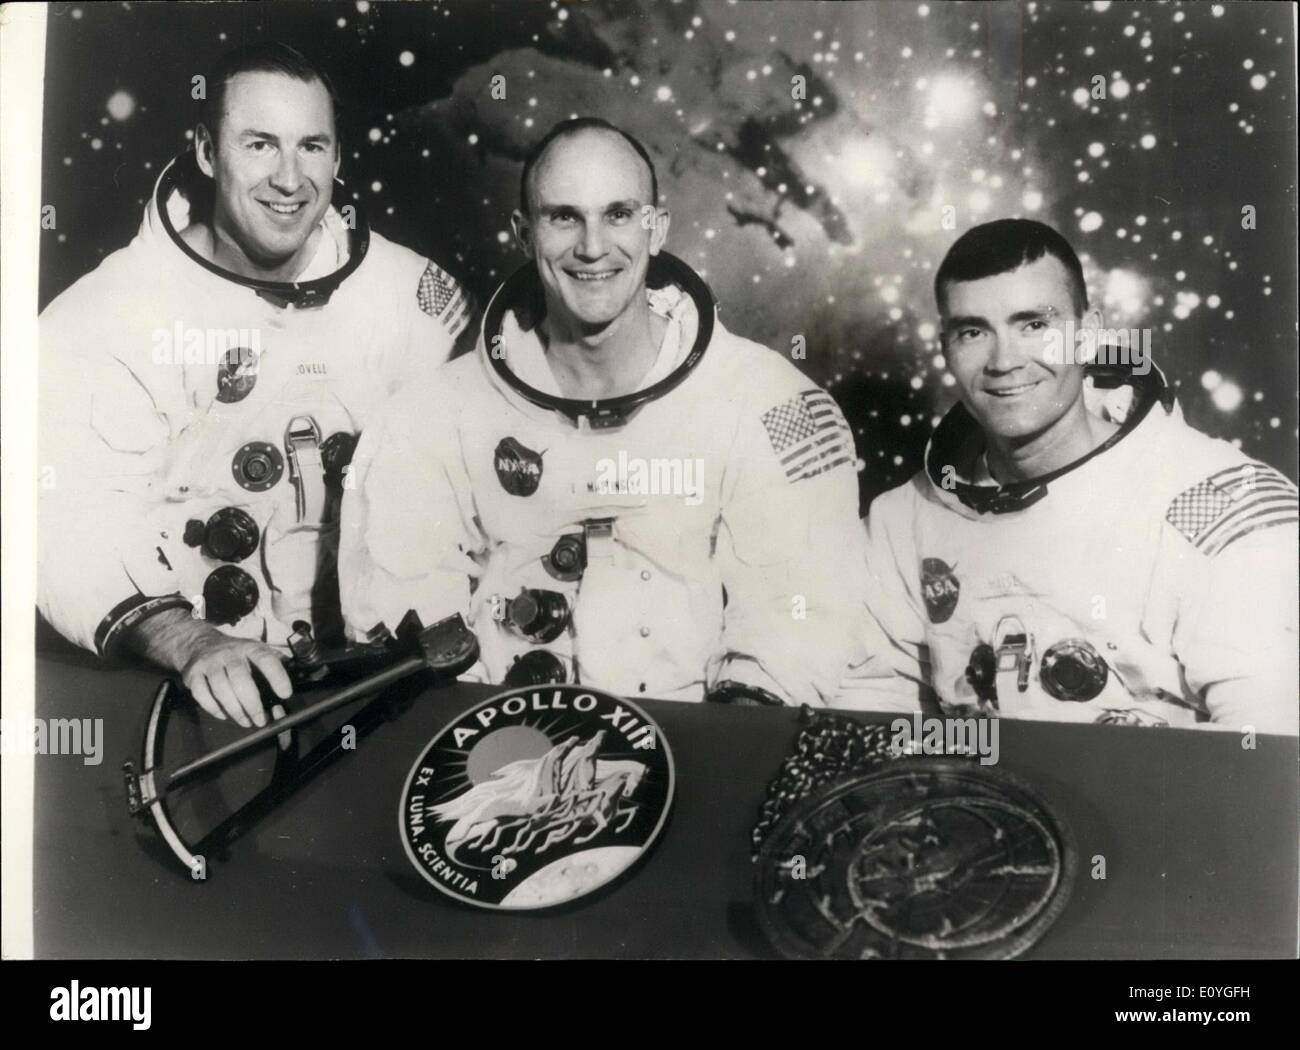 Apr. 11, 1970 - Seventh manned Apollo crew: The members of the prime crew of the Apollo 13 lunar landing mission are (l to r), Astronauts James A. Lovell; Thomas K. Mattingly, and Fred W. Haise. they are seated in front of a scene of the Lagoon Nebula, with the mission insignia and two items of early navigation in the foreground. Represented in the Apollo 14 emblem (center) is Apollo, the sun god of Greek mythology, symbolizing that the Apollo flights have extended the light of knowledge to all mankind - Stock Image